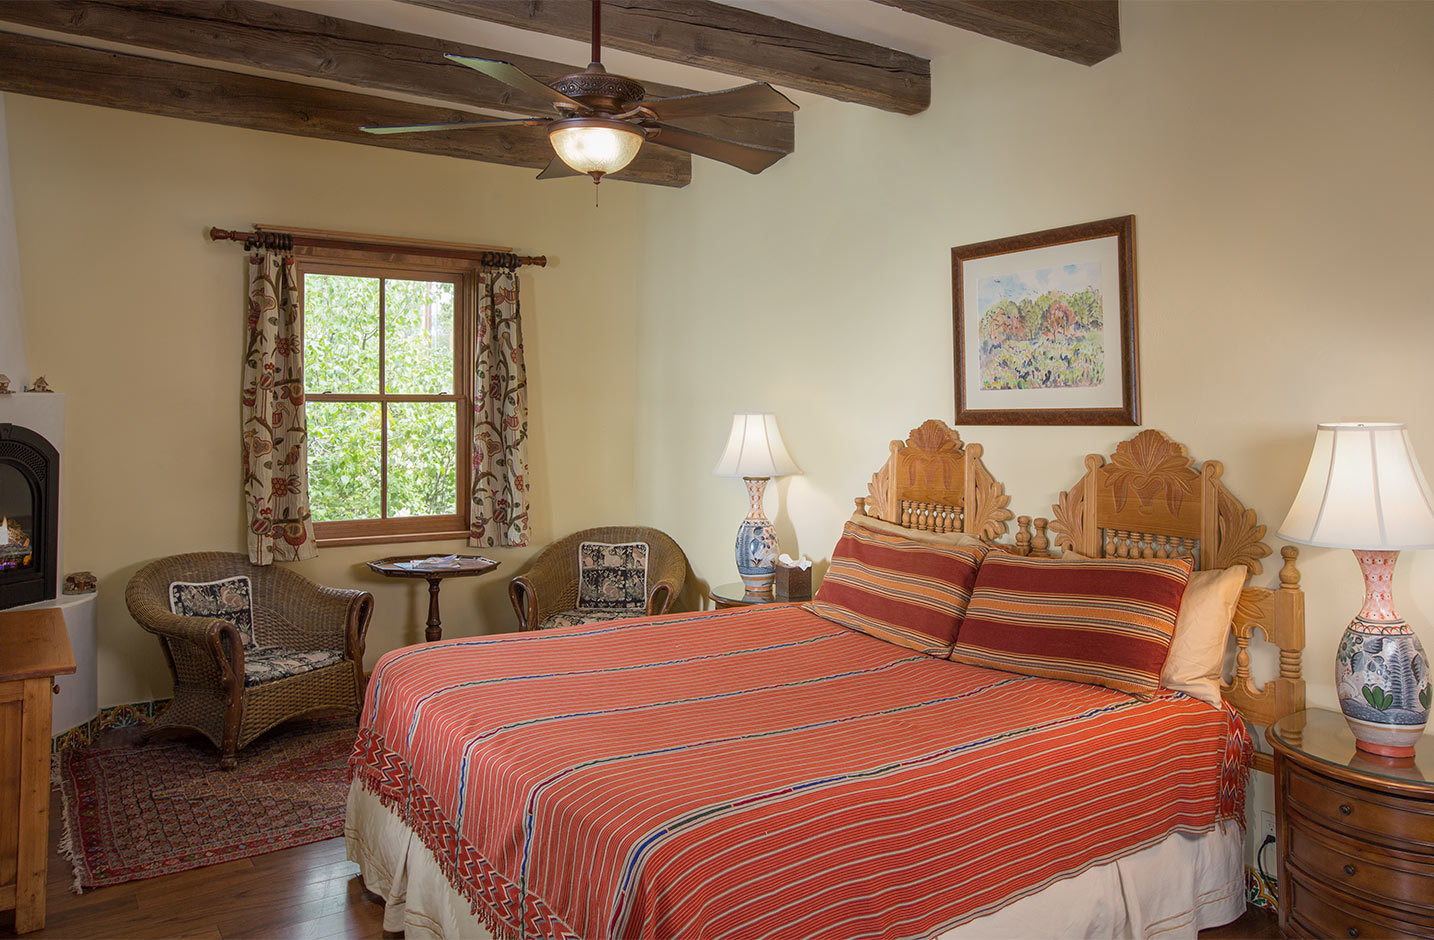 Room with a king size bed, ceiling fan, gas fireplace, and seating area